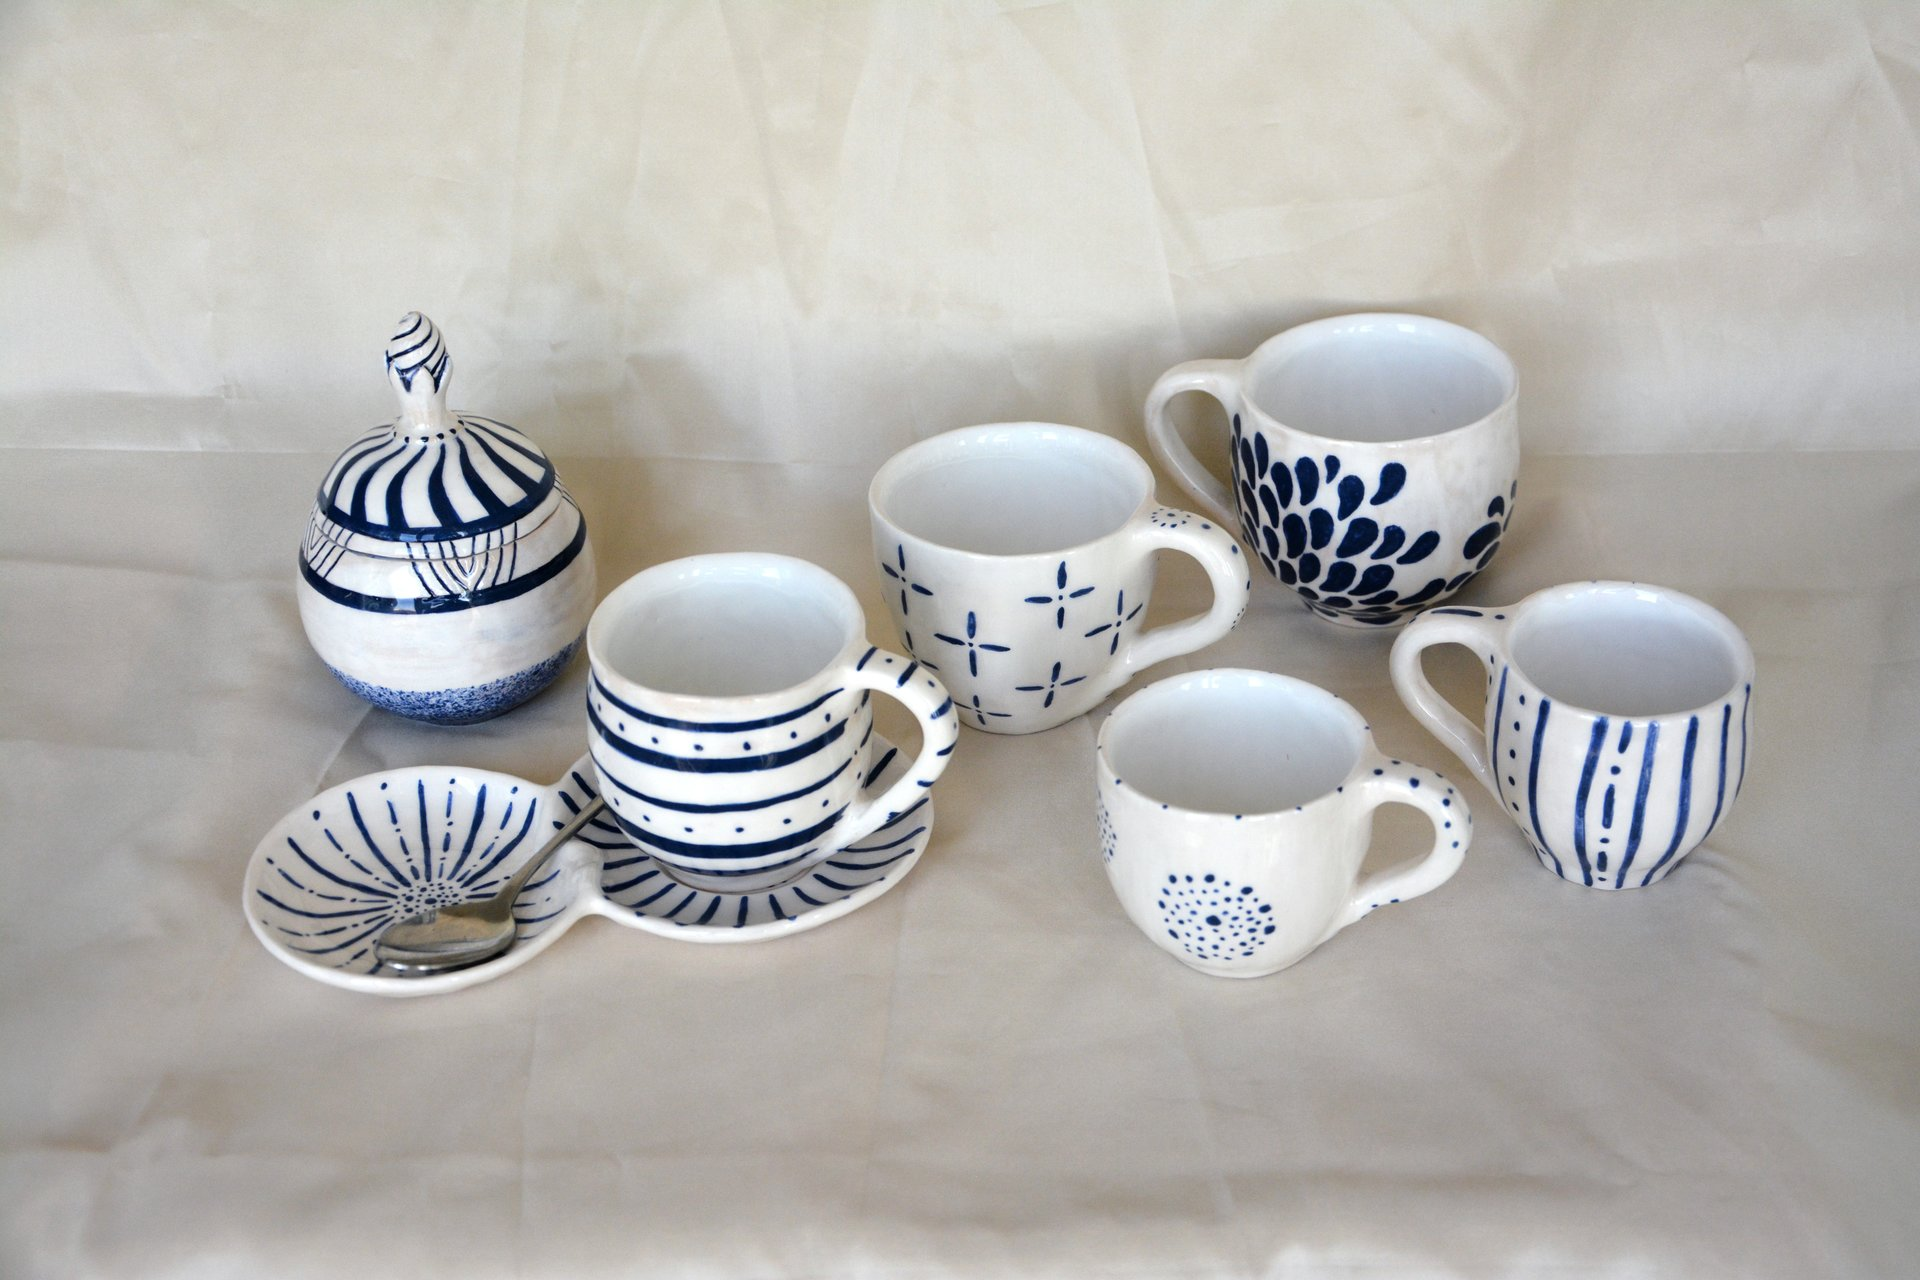 White with blue pattern Crosses - Cups, glasses, mugs, height - 7,5 cm, volume - 250 ml, photo 4 of 4.